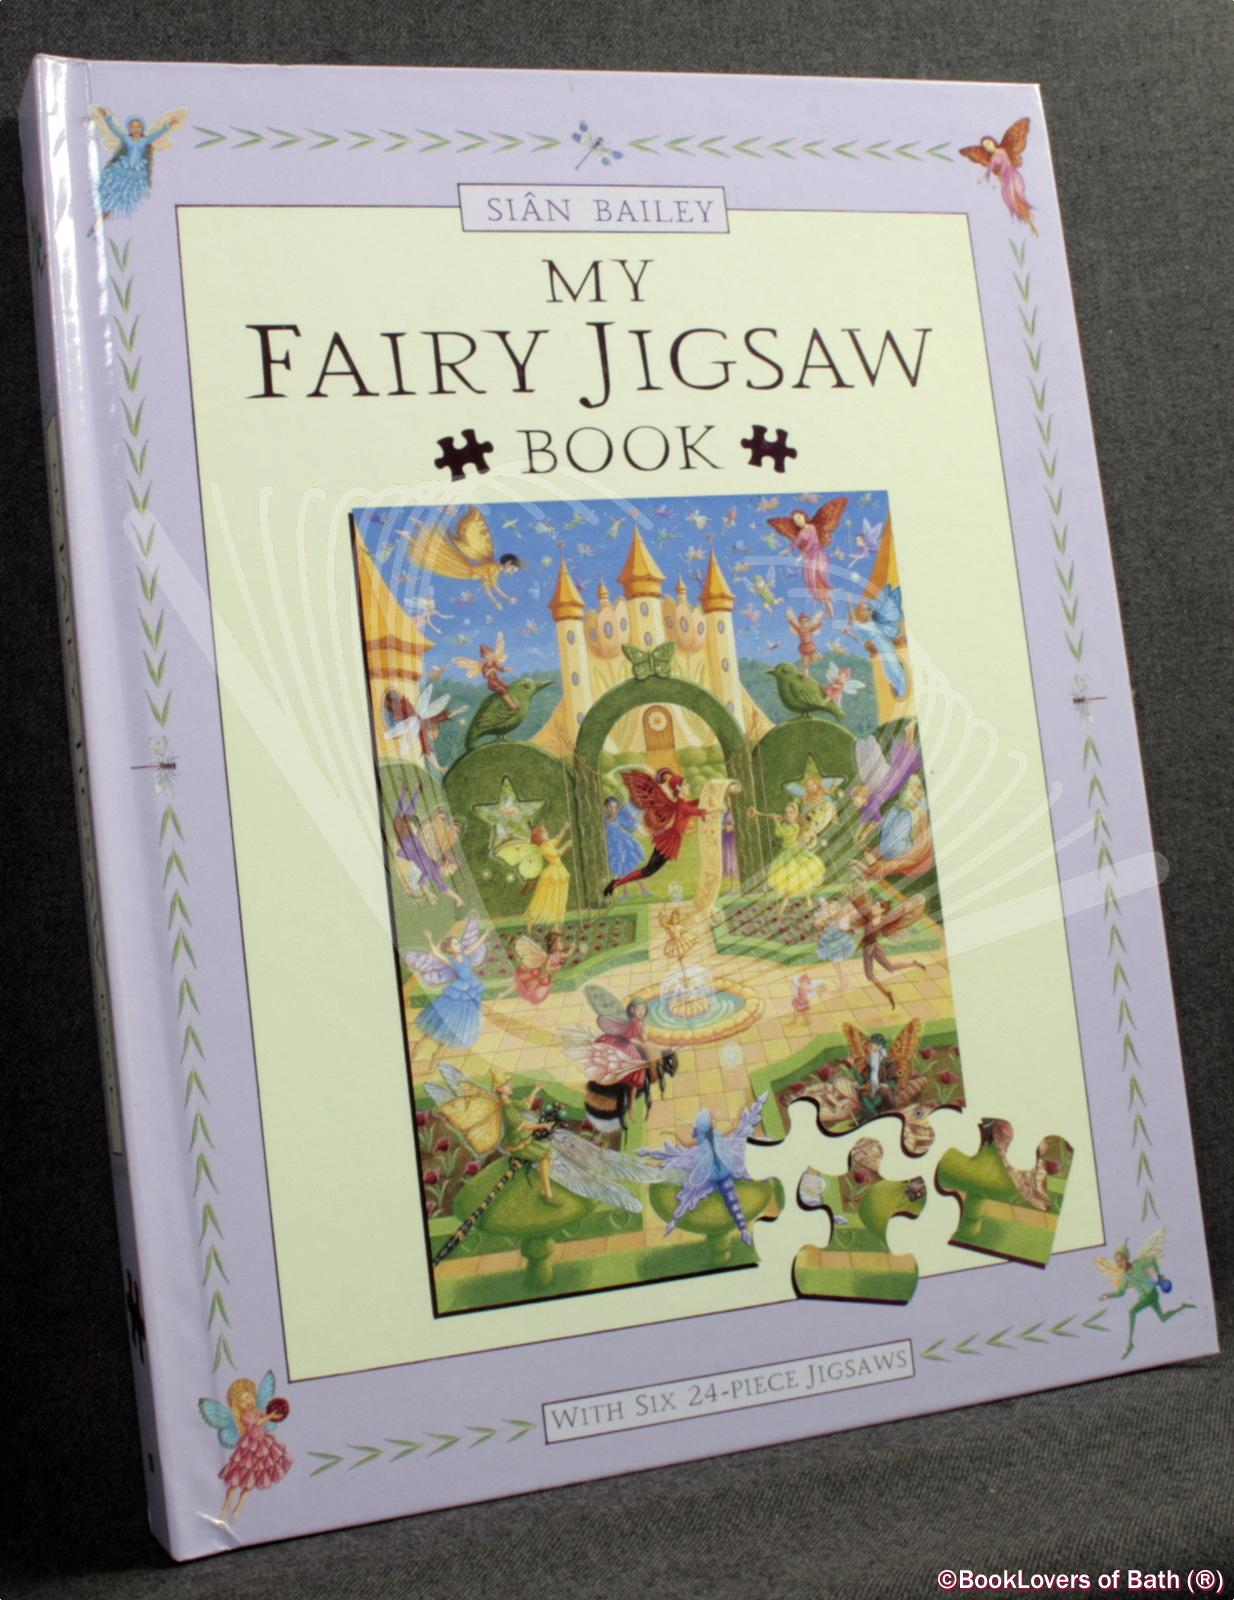 My Fairy Jigsaw Book - Sian Bailey